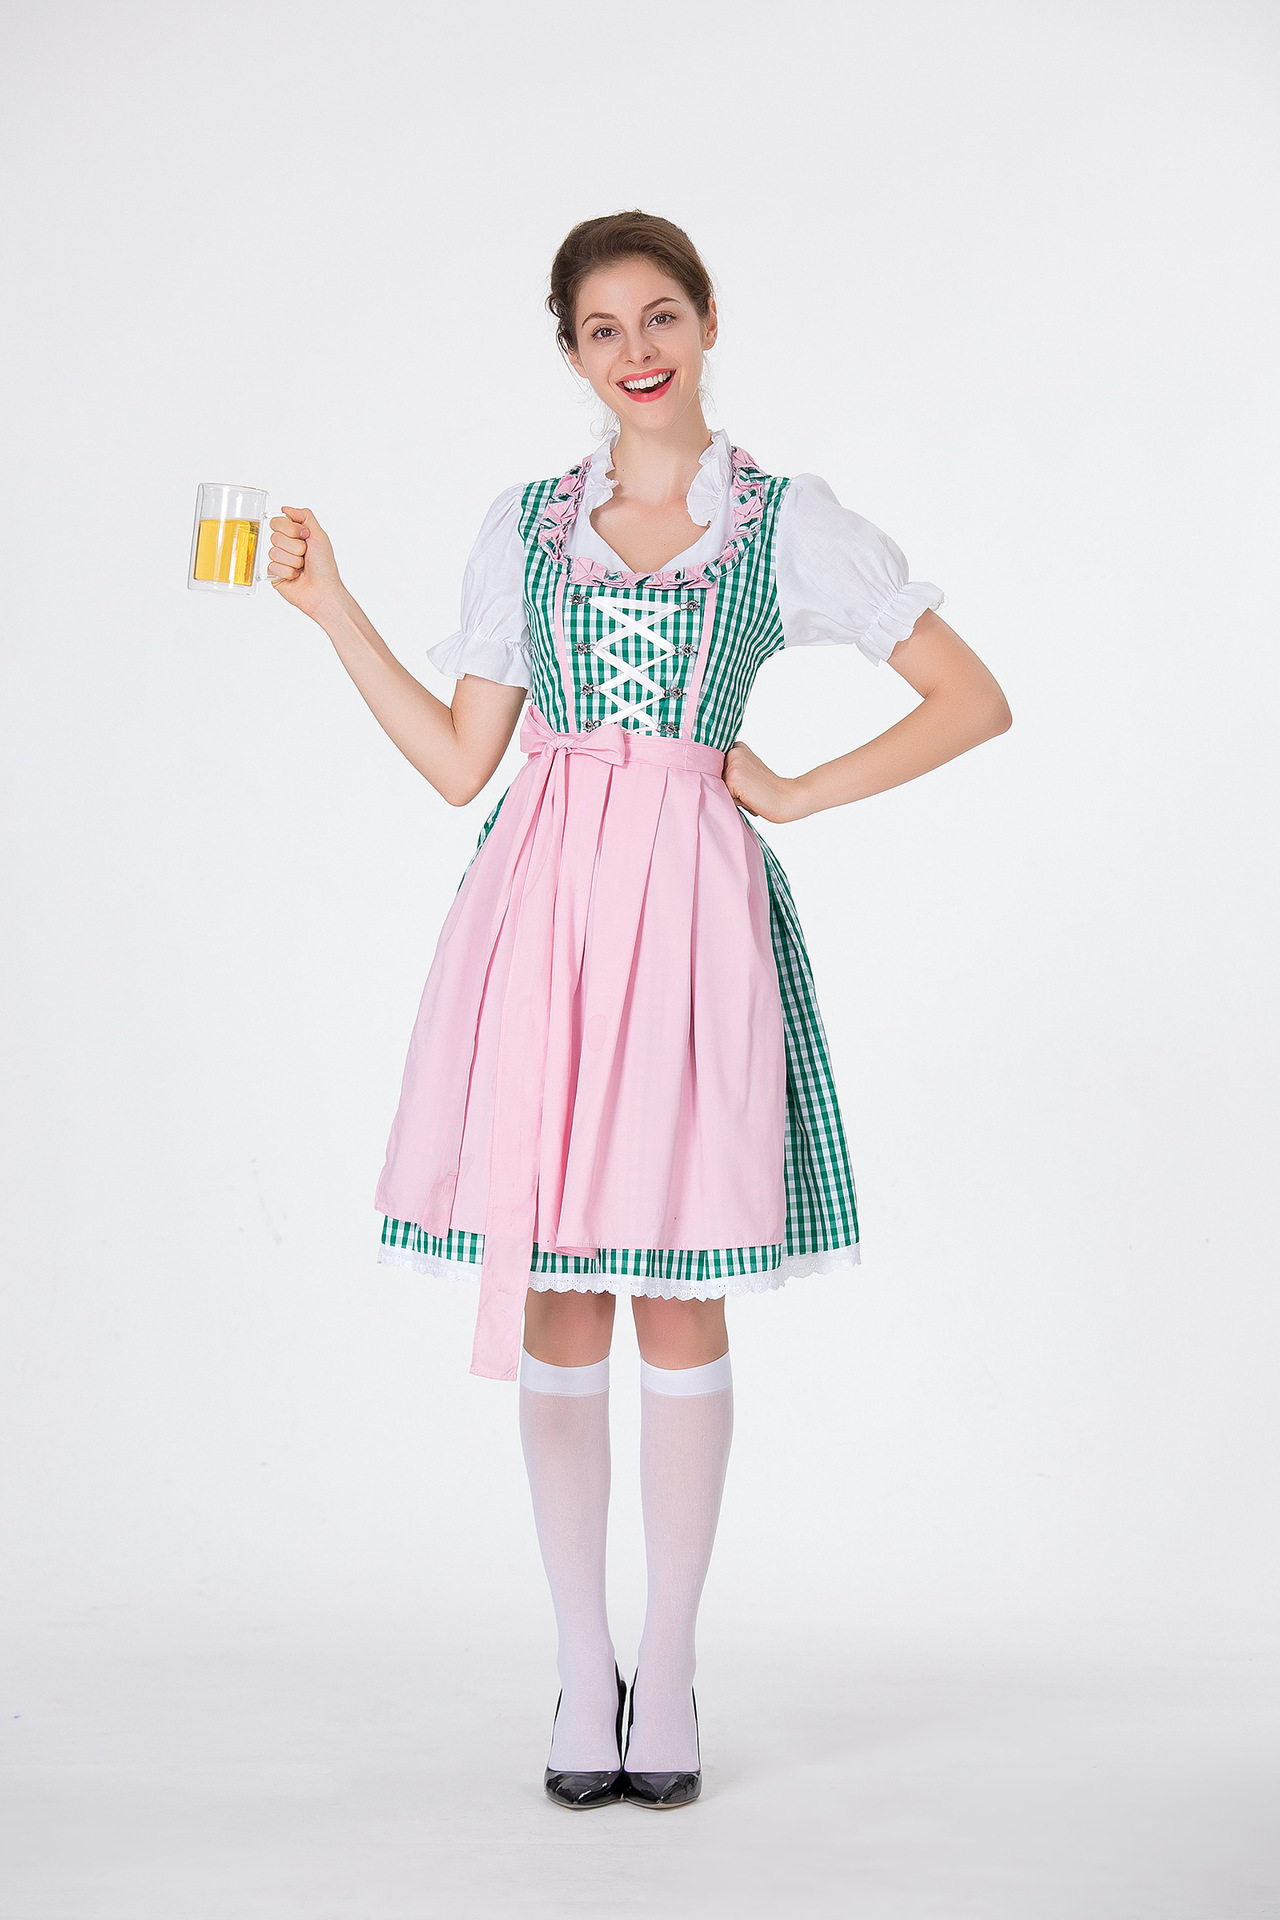 Women Oktoberfest Costume Large Size Dirndl Dress Adult Retro Lady Dress for Hallowmas green_M